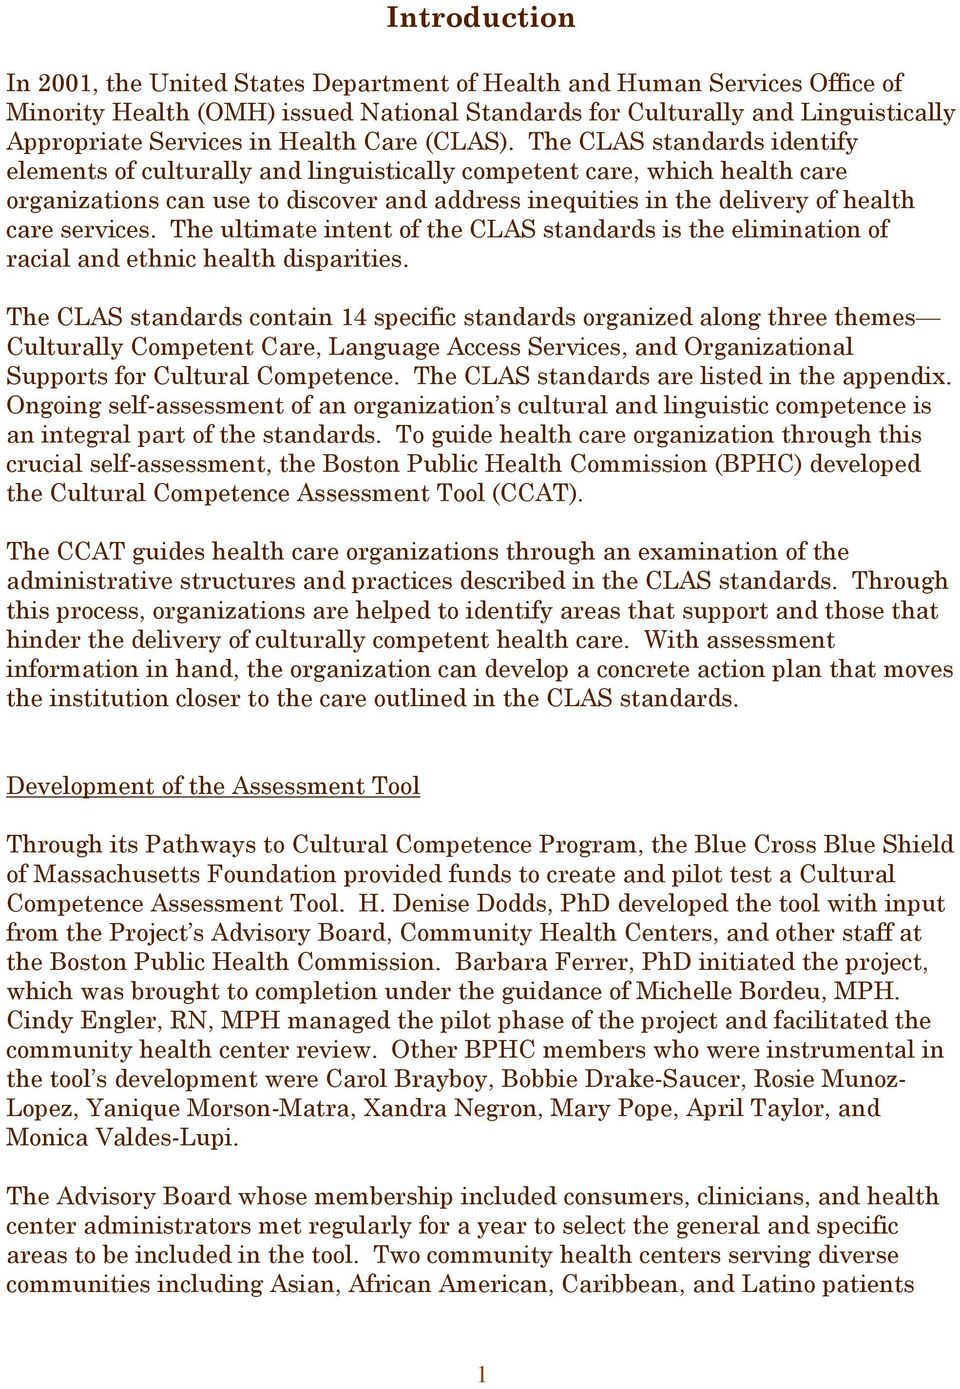 The CLAS standards identify elements of culturally and linguistically competent care, which health care organizations can use to discover and address inequities in the delivery of health care